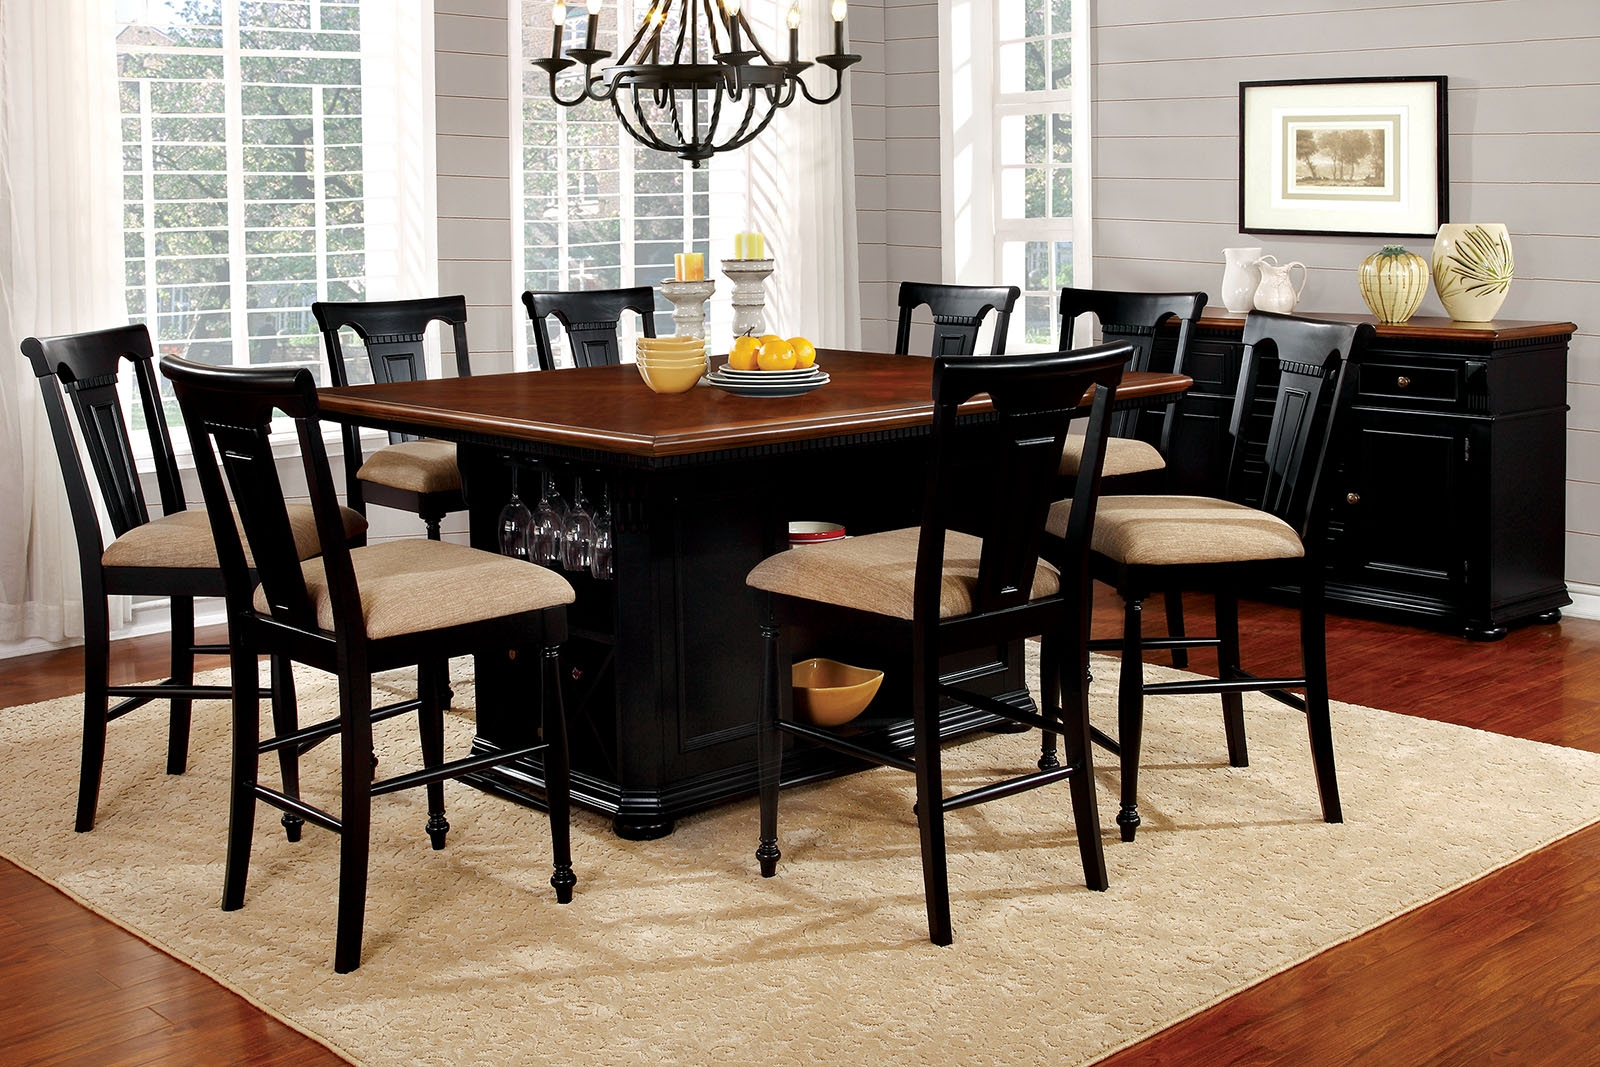 sabrina country style 9pc cherry black finish counter height dining table set